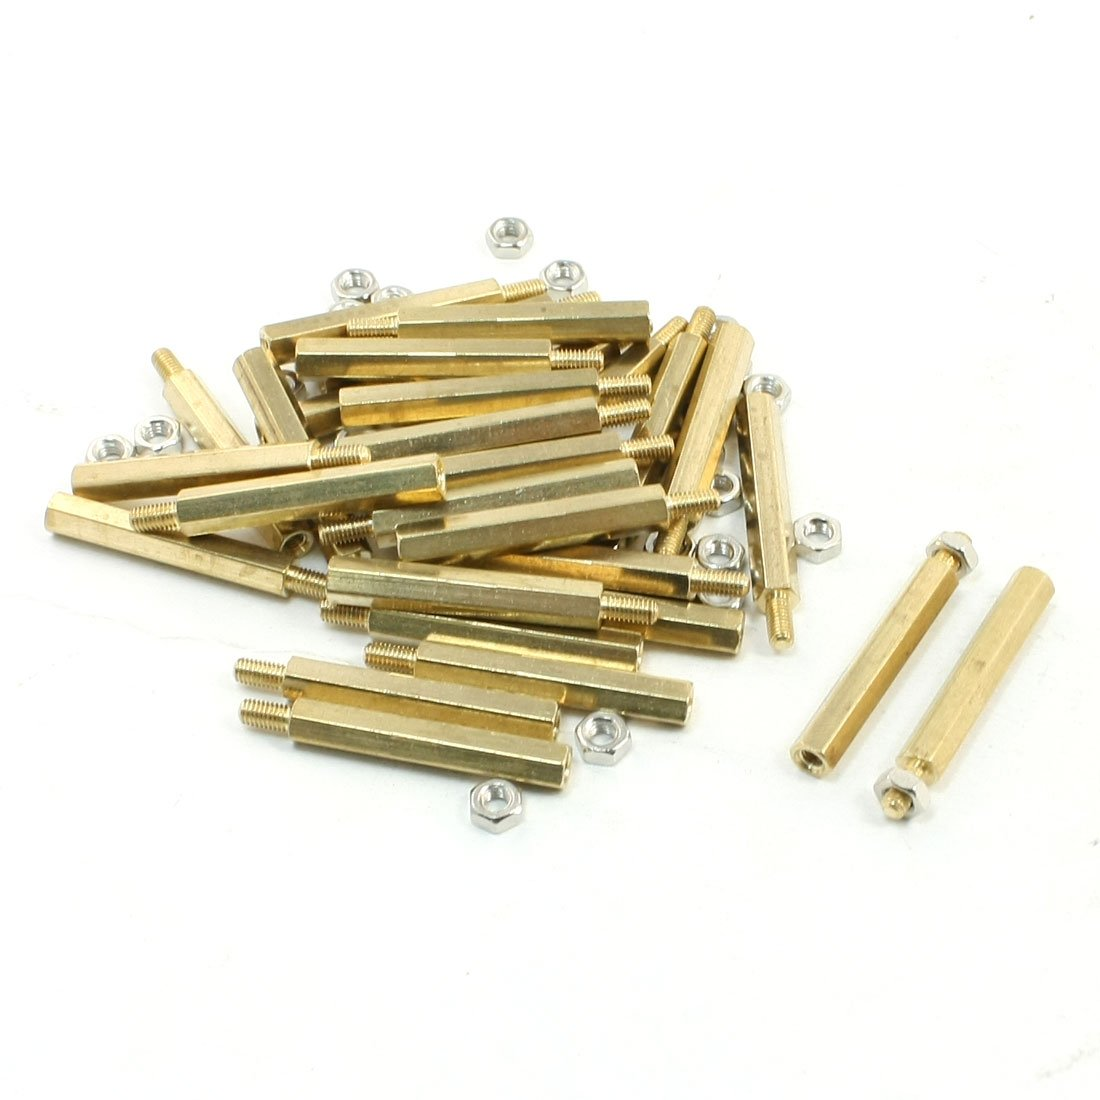 uxcell 30mm Body Long M3x6mm Male Female Brass Pillar Standoff Spacer 30Pcs